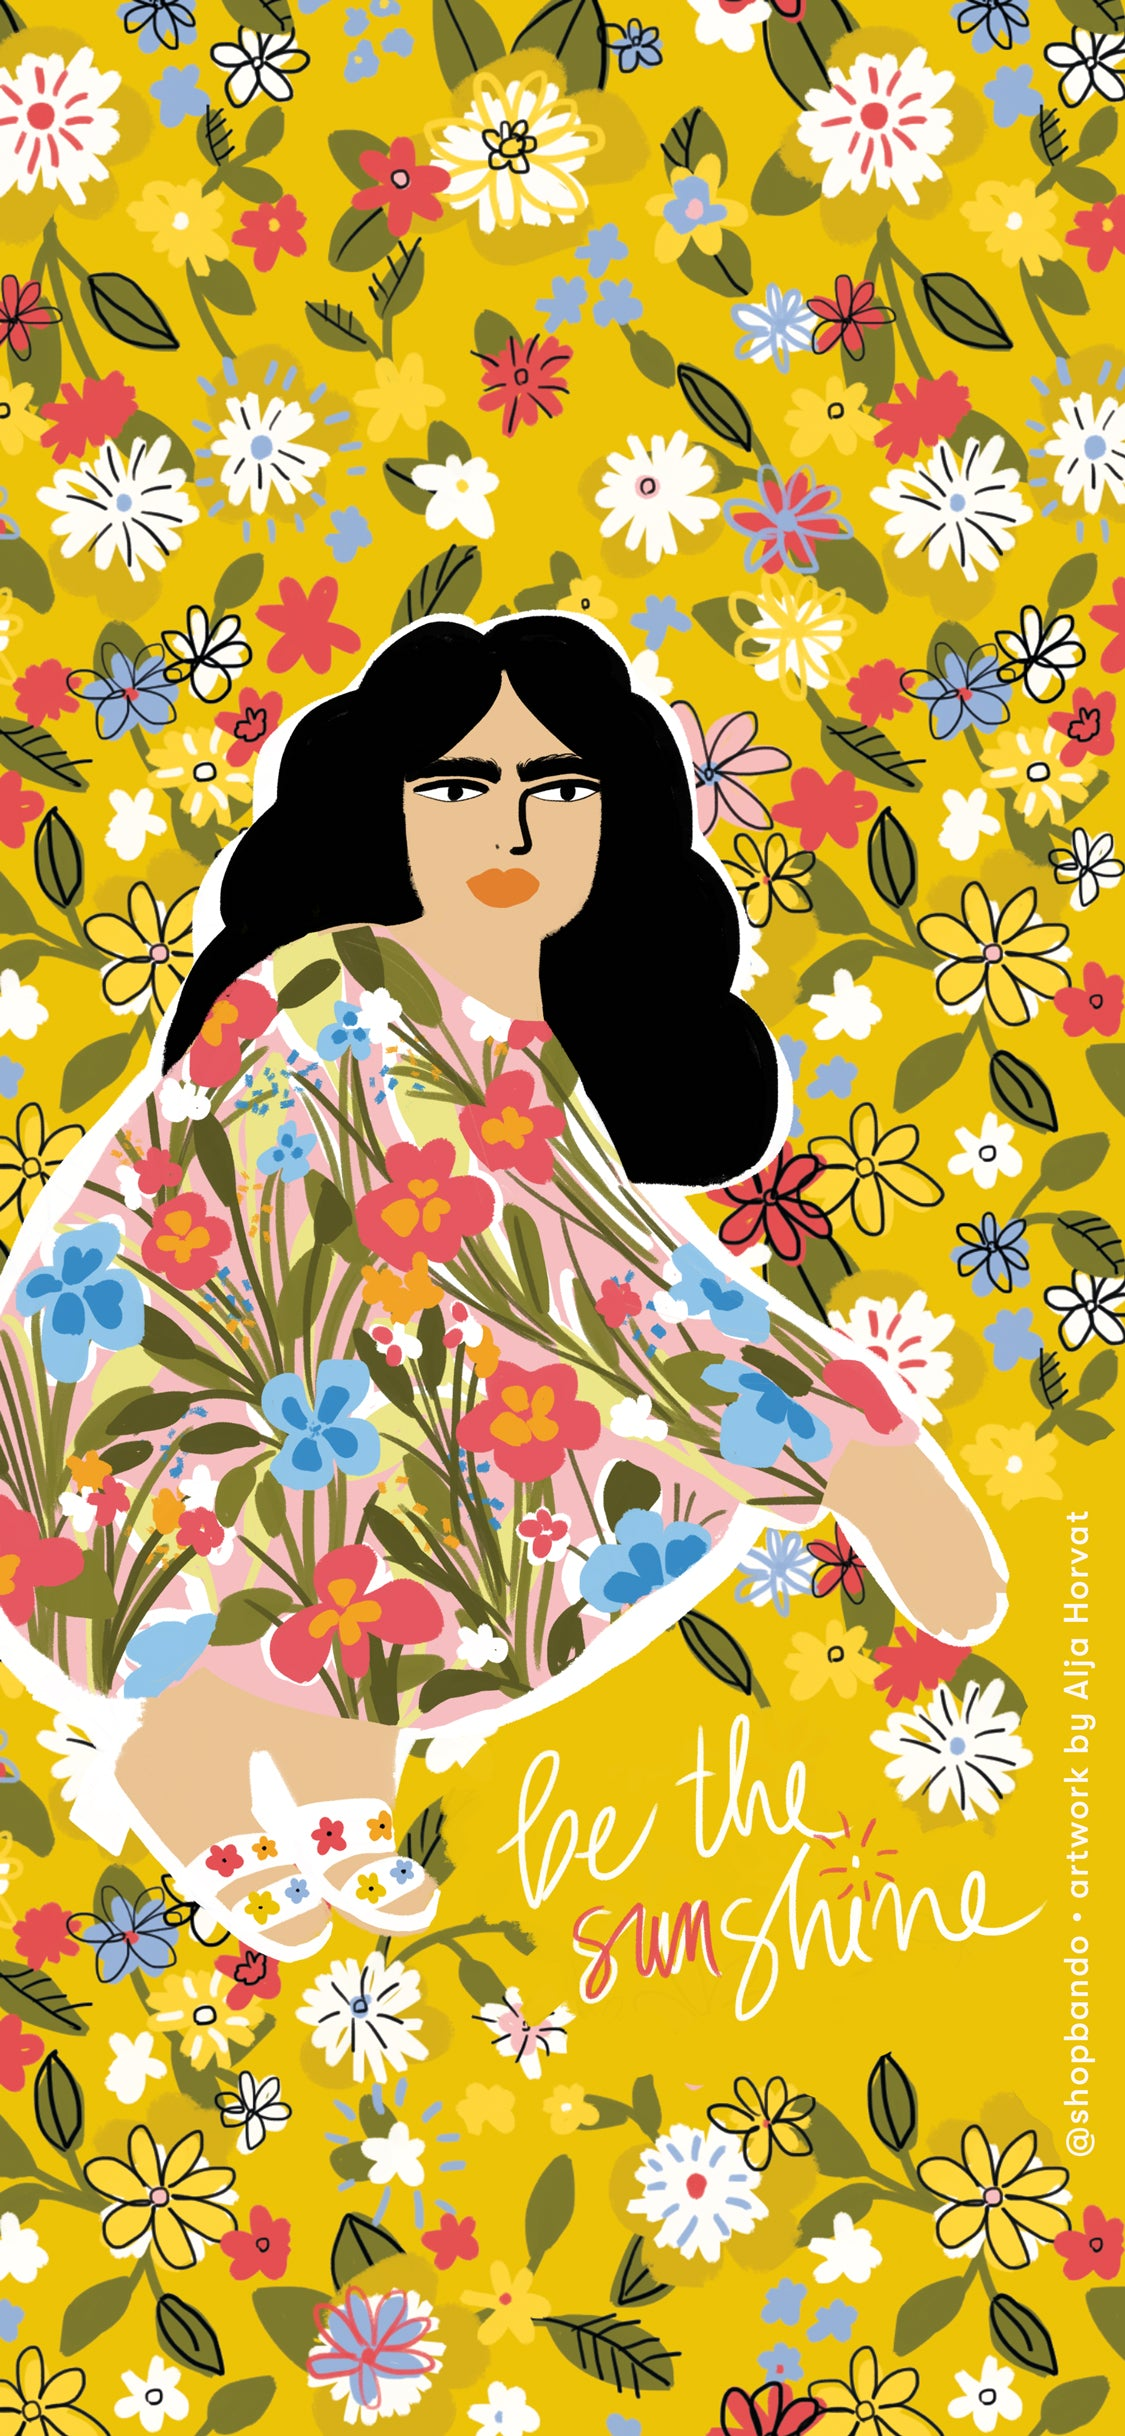 illustration of women against yellow floral background